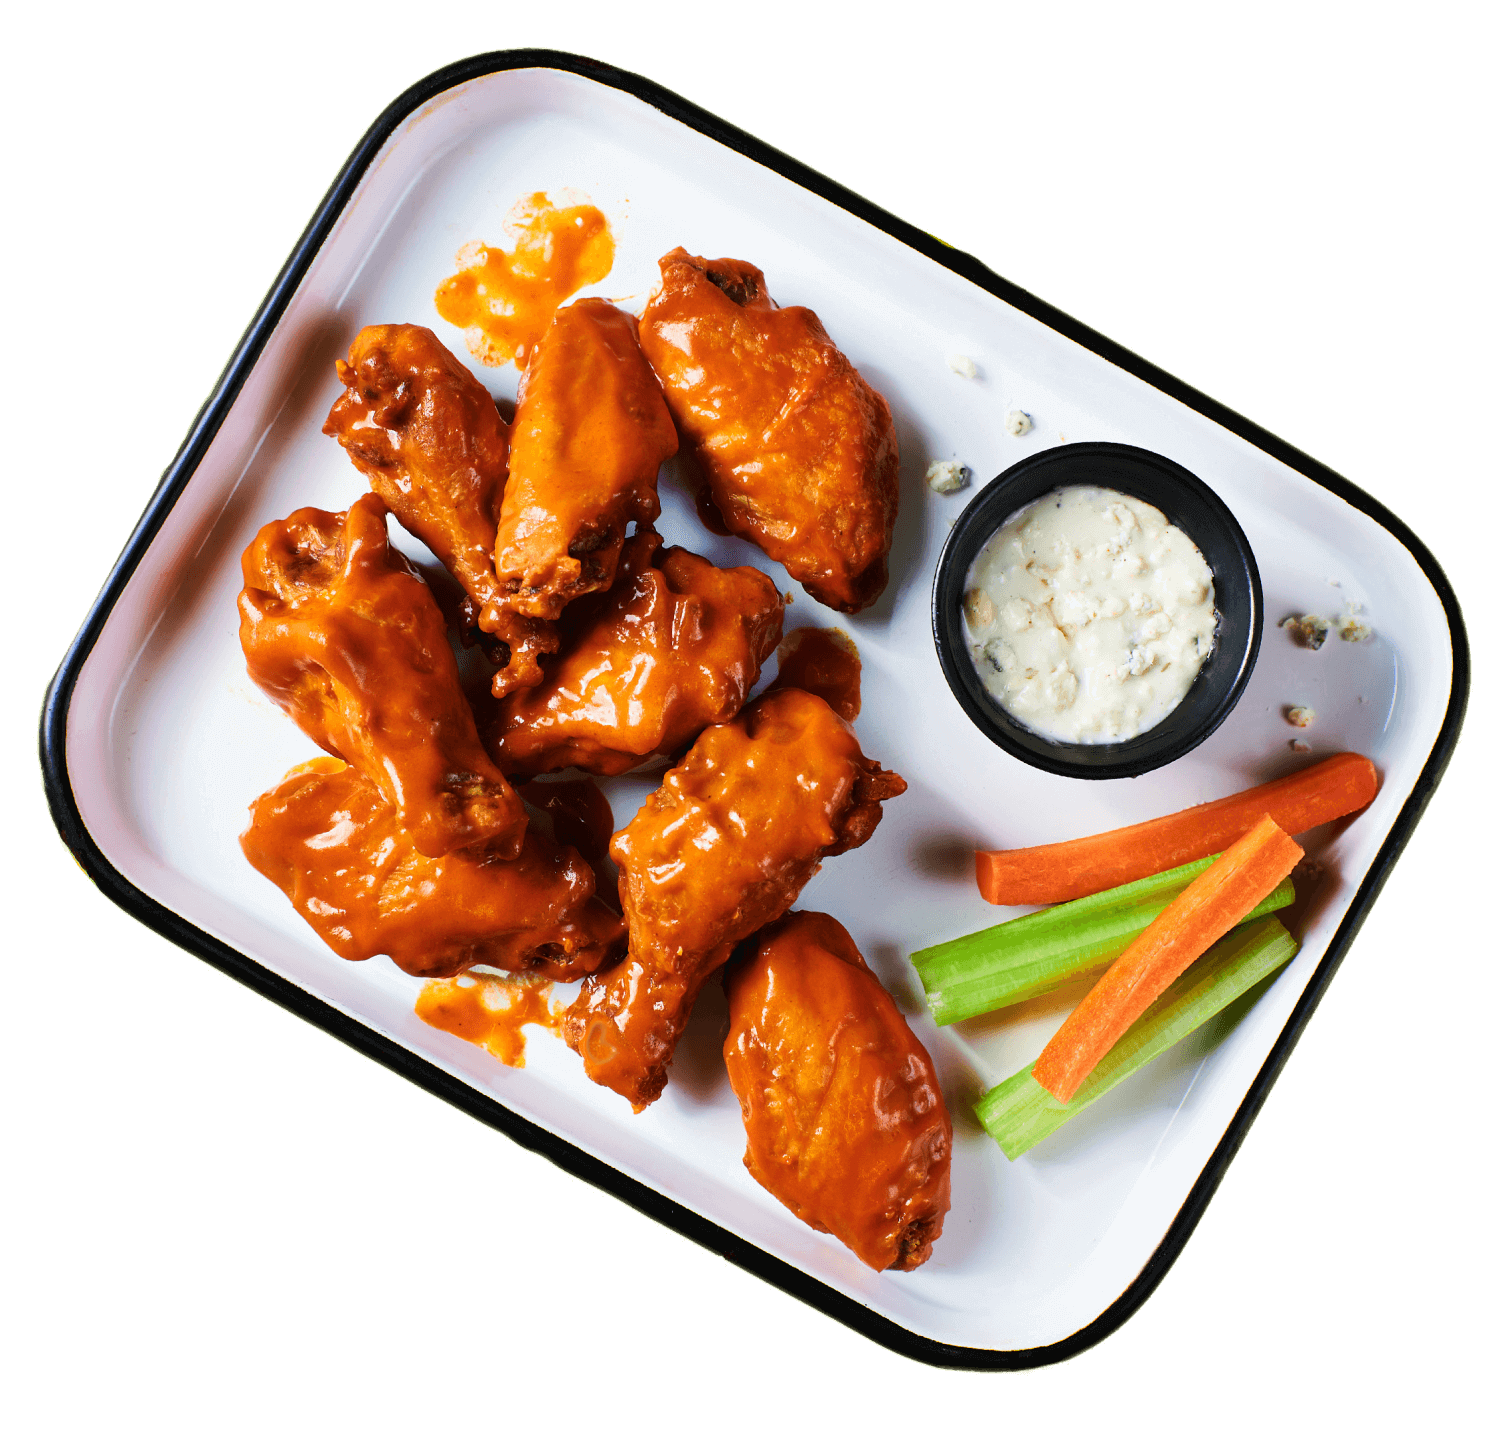 EVEN BIGGER BETTER BUFFALO WINGS - A hefty portion (15 count) of our big, juicy, meaty, tender and saucy buffalo wings, served with your choice of ranch or blue cheese, and crunchy celery and carrots for dipping --- by HotBox by Wiz Khalifa